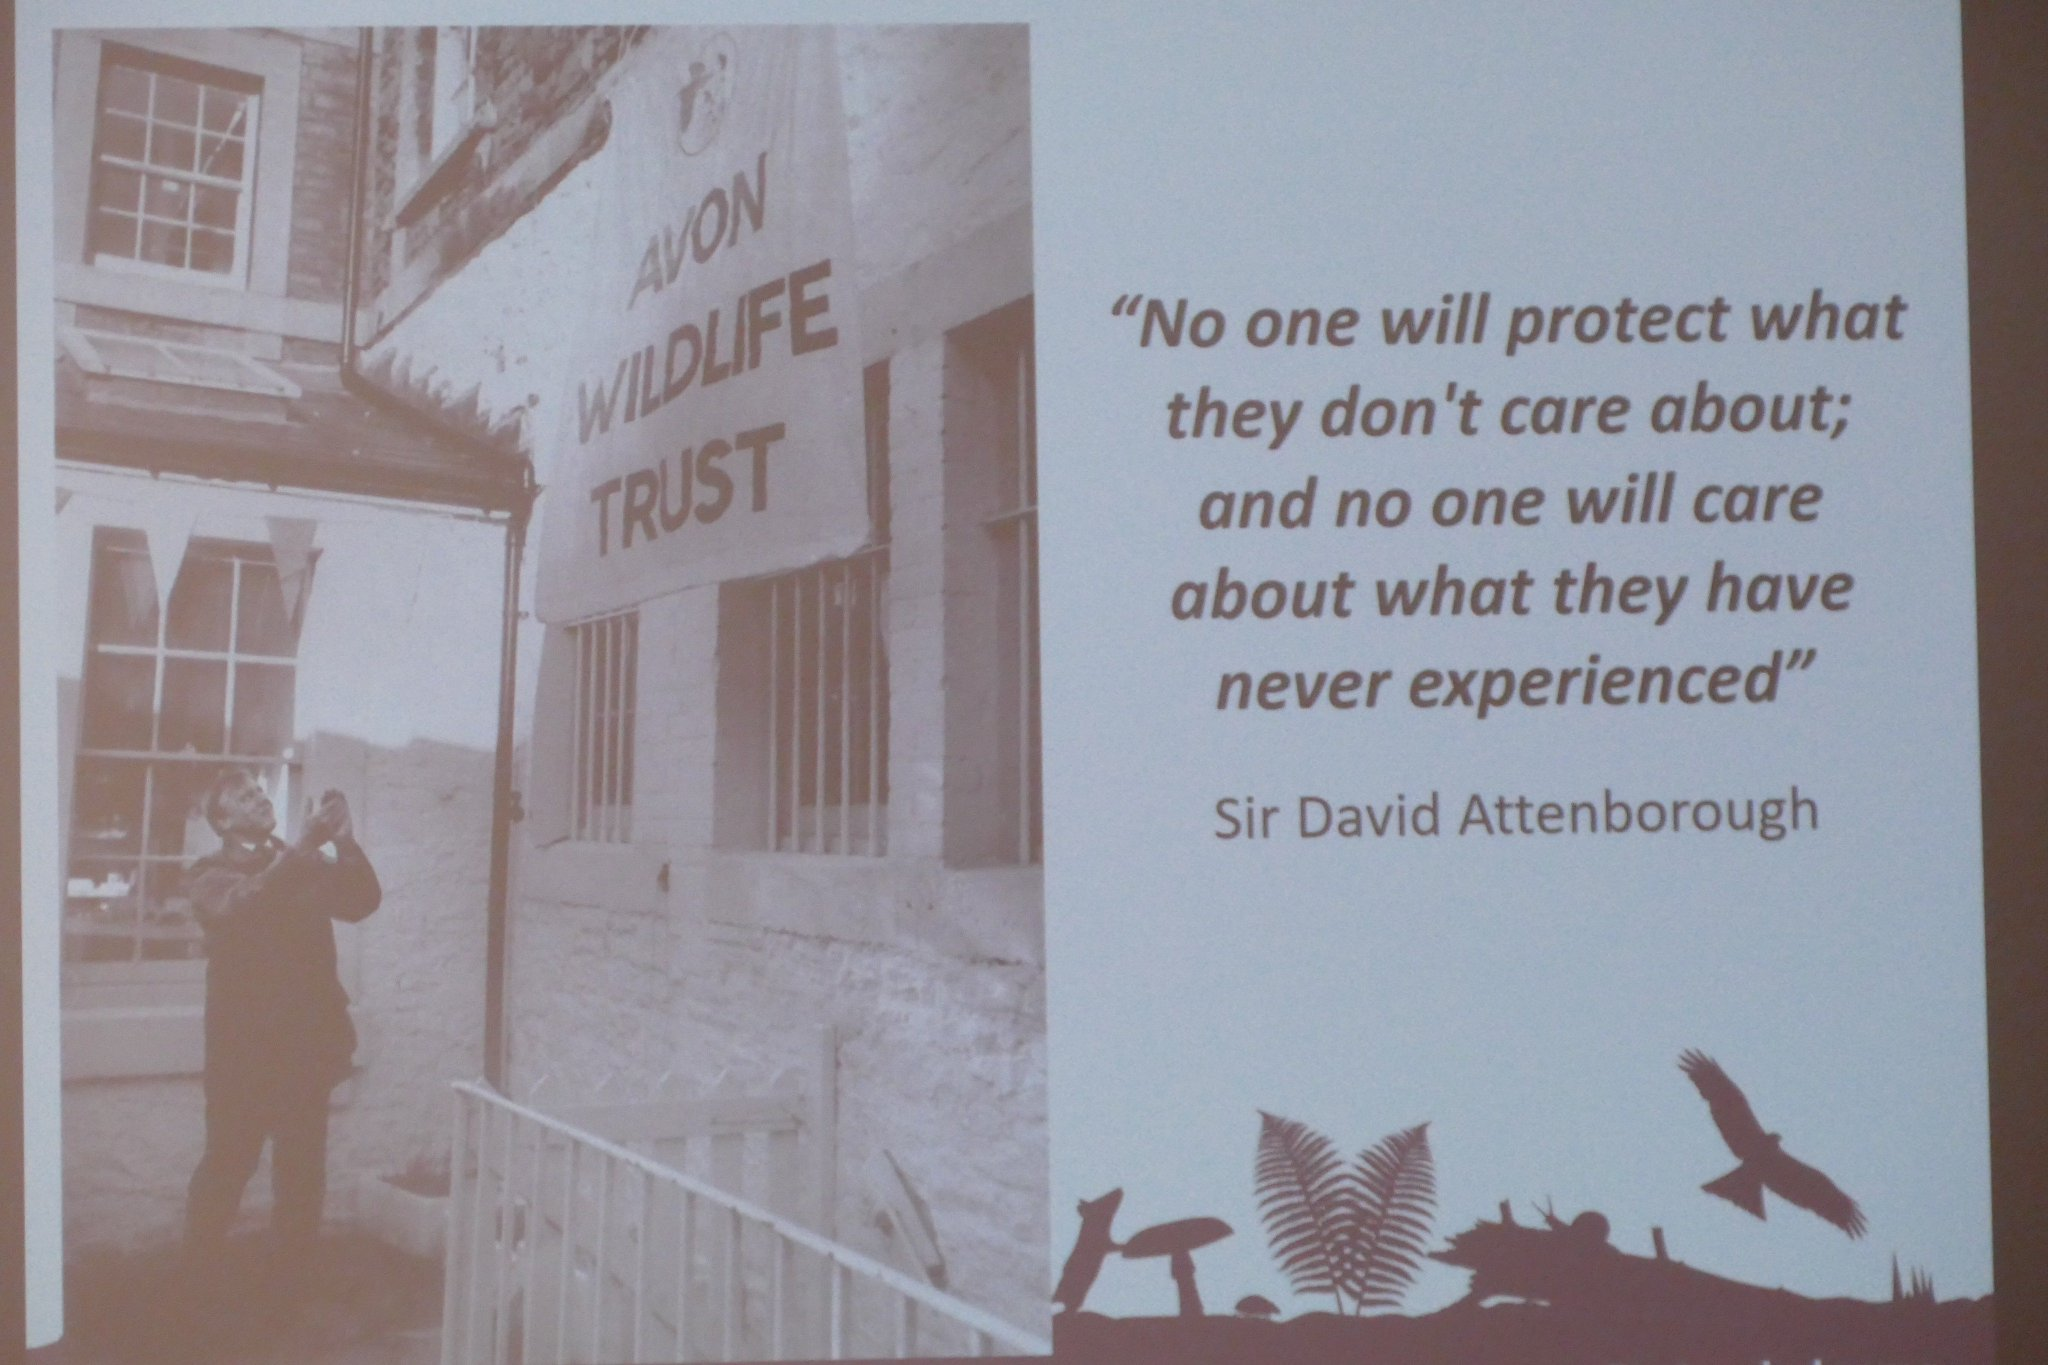 Great quote from Attenborough given by @IanBarrettSW at #NatureinDanger gathering. #Bristol #wildlife #nature https://t.co/28C5l4wzMa